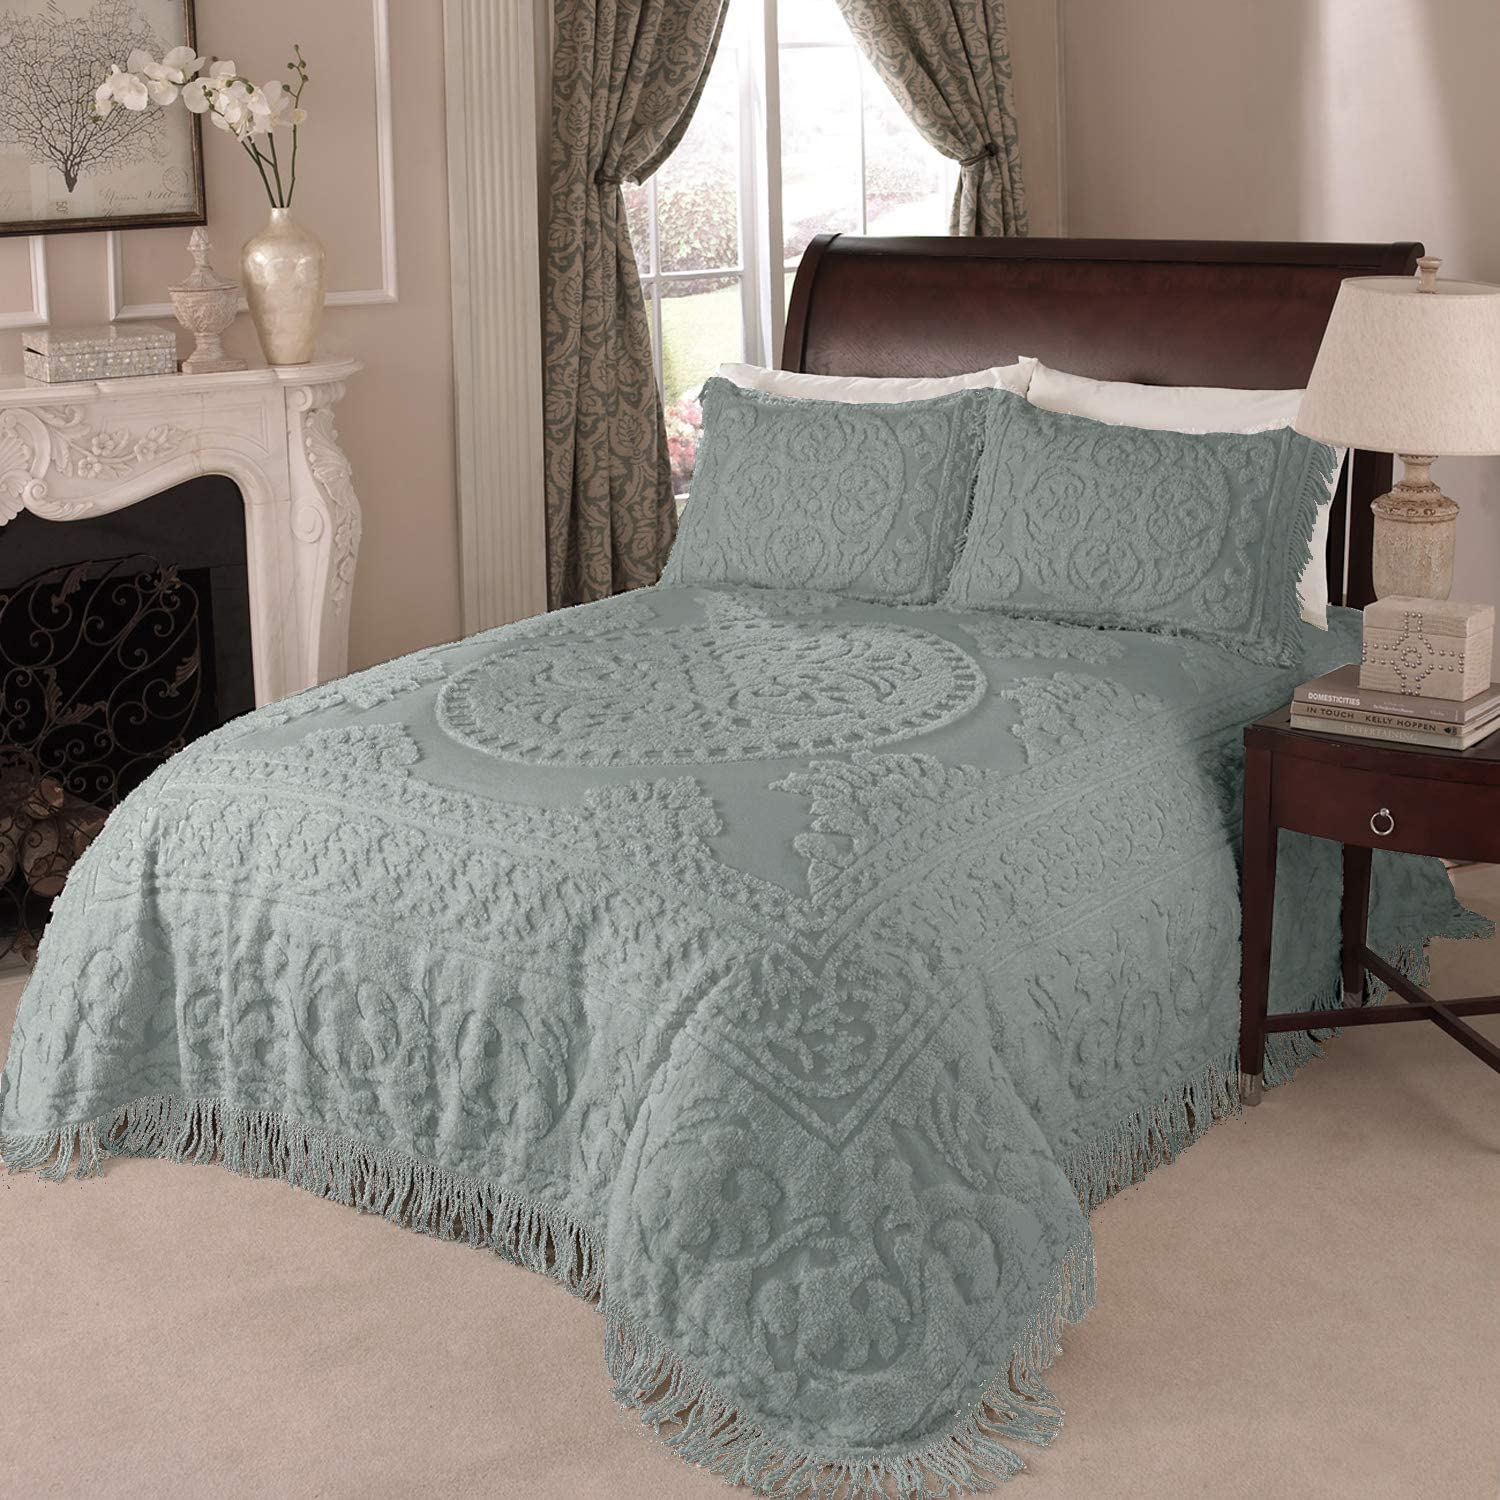 Beatrice Home Fashions Medallion Chenille Bedspread, King, Blue